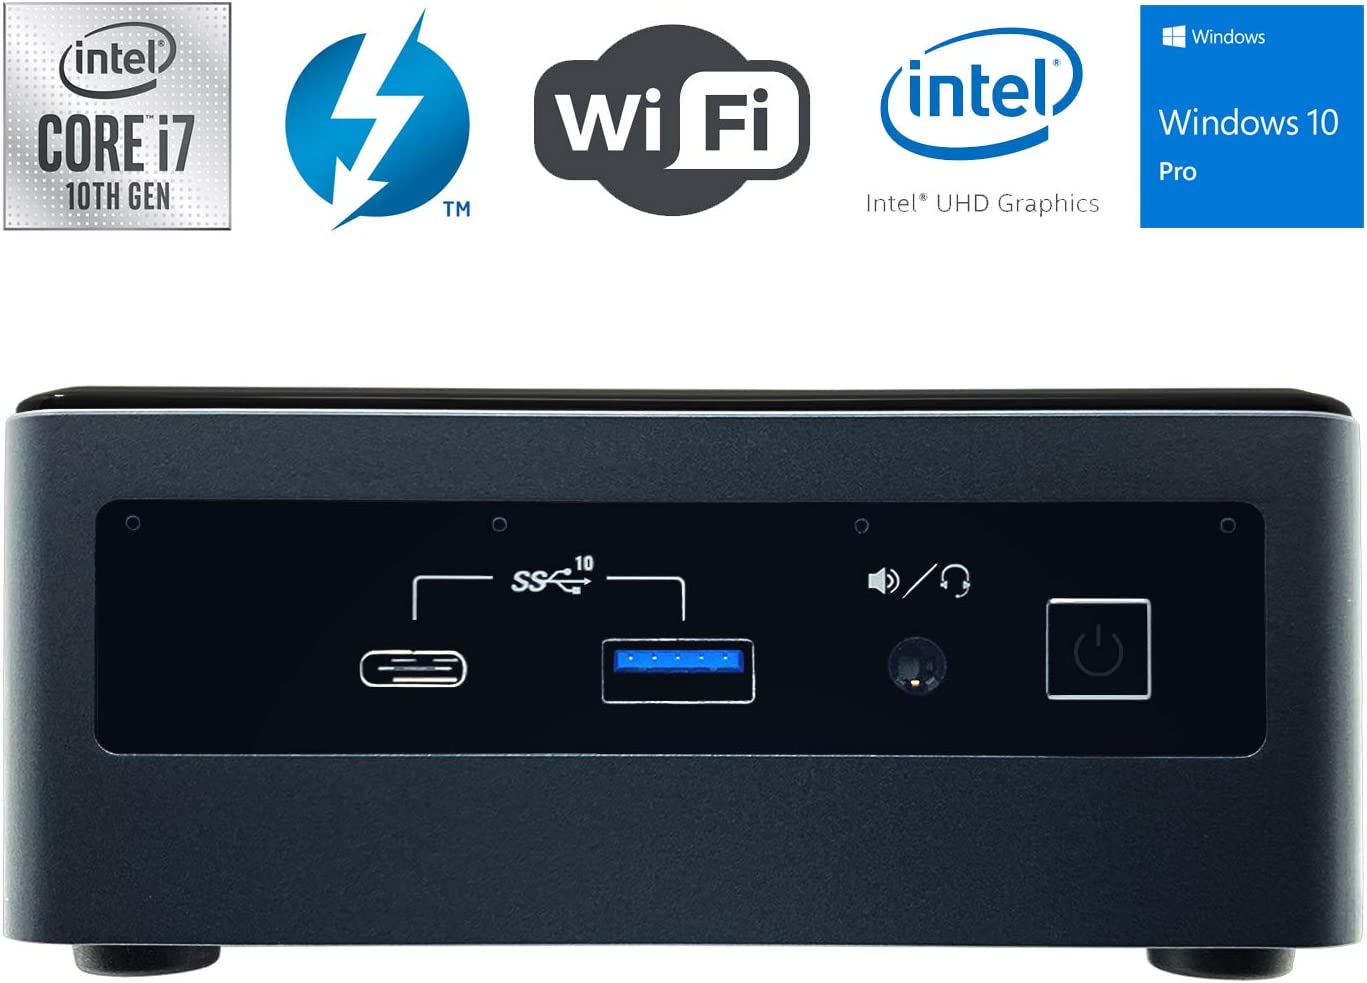 Intel NUC NUC10i7FNH Ultra Small Mini PC/HTPC - 10th Gen Intel 6-Core i7-10710U up to 4.70 GHz CPU, 16GB DDR4 RAM, 512GB SSD, Wi-Fi + Bluetooth, Intel UHD Graphics, Windows 10 Professional